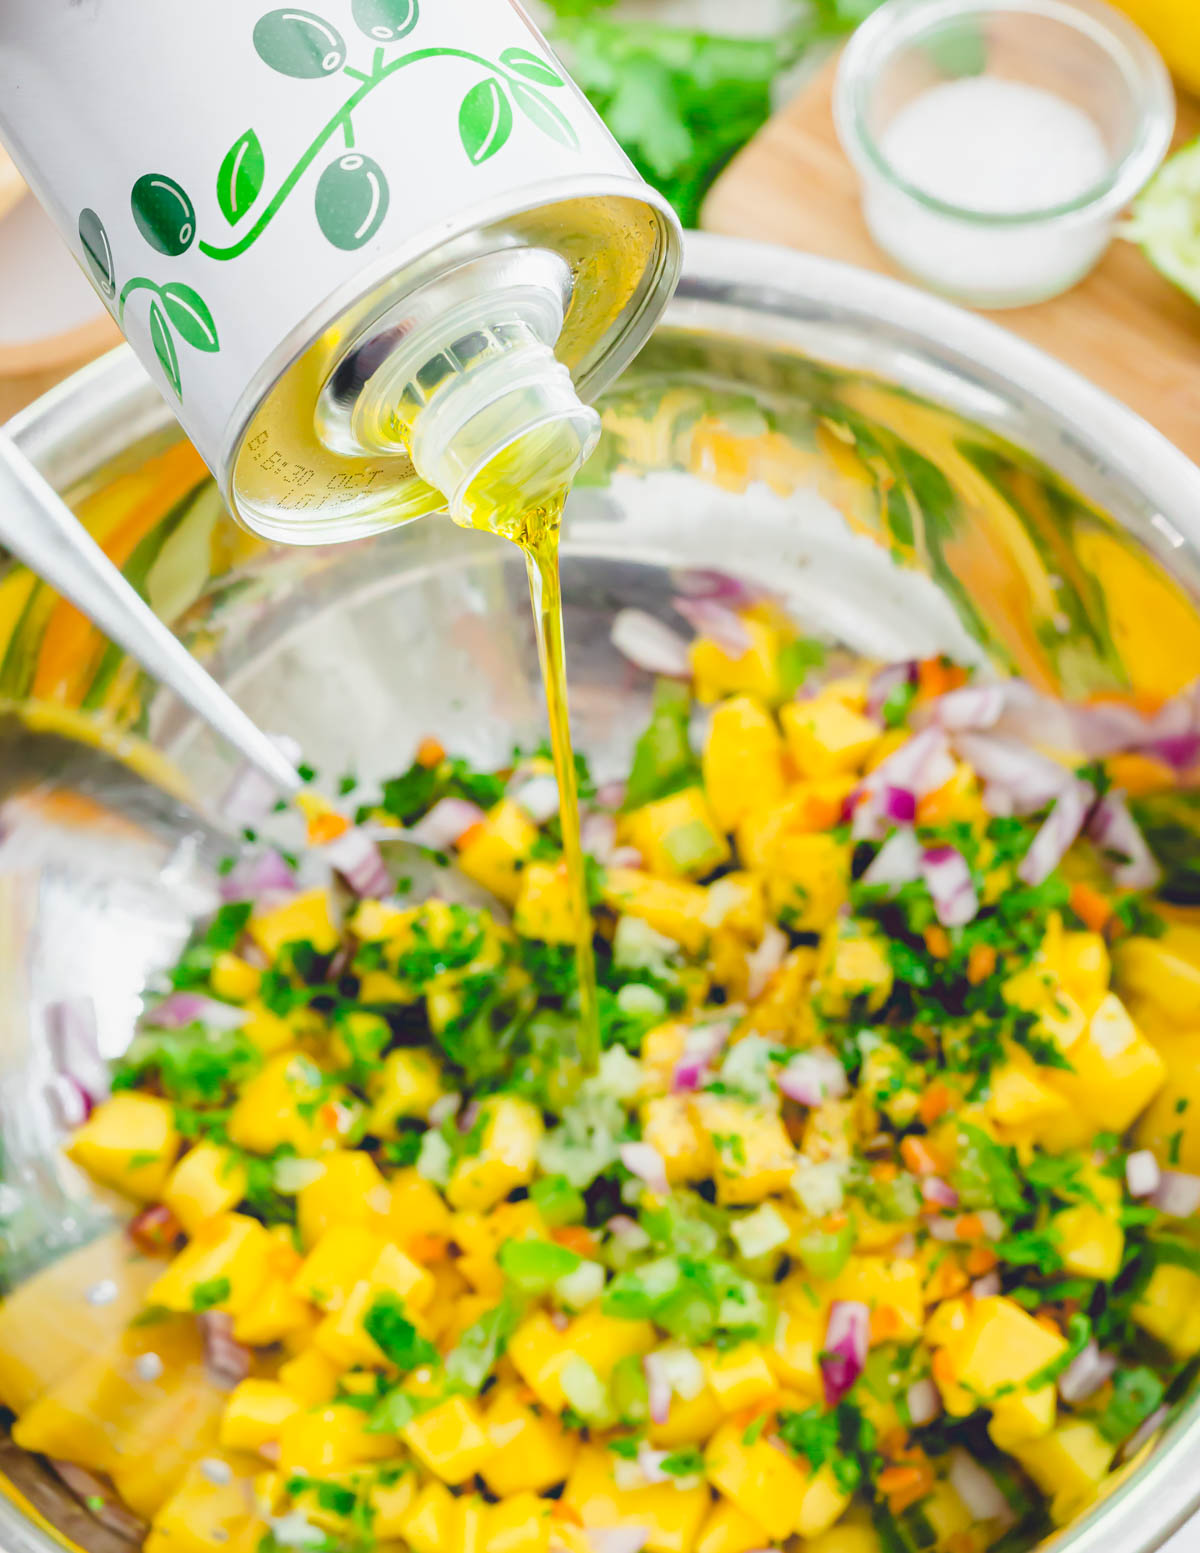 Pouring extra virgin olive oil into a bowl of mango habanero salsa.